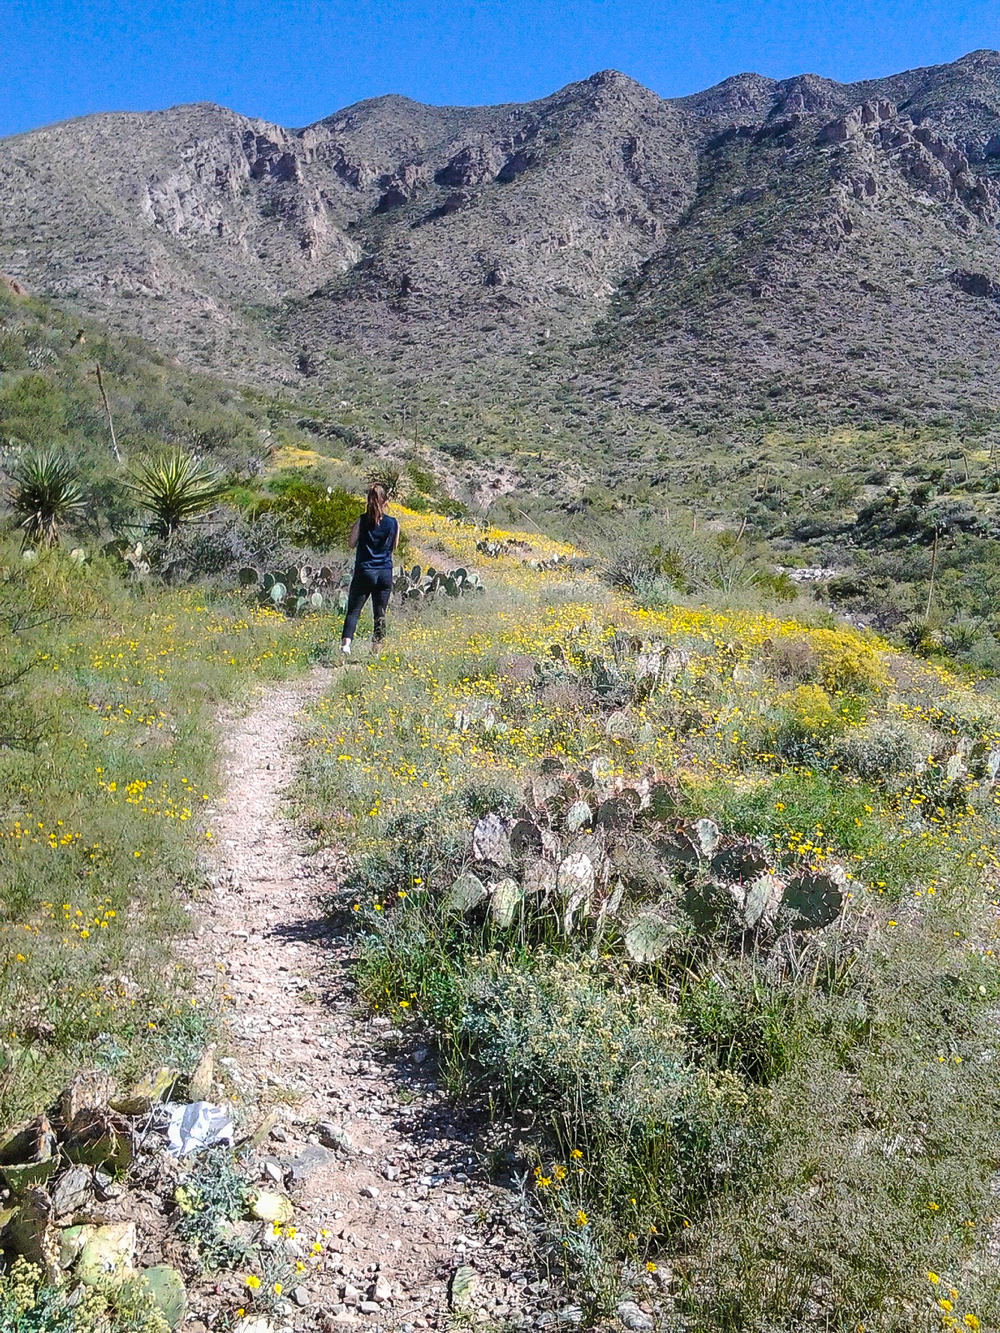 One of Franklin Mountains State Park's wonderful hiking trails in El Paso.